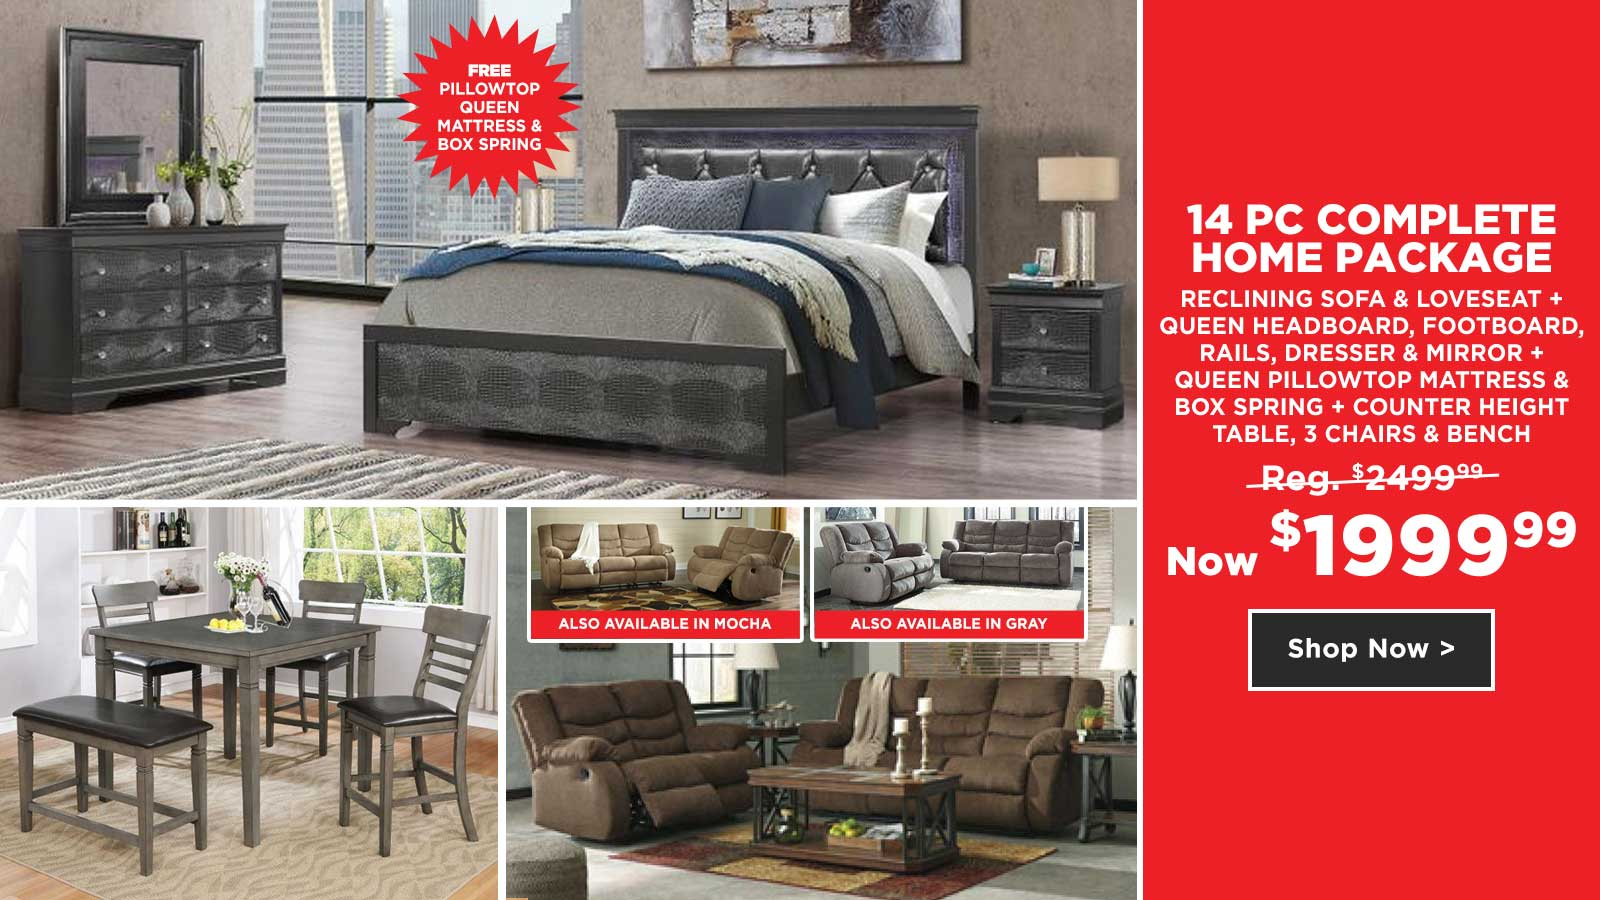 14pc Complete Home Package $1999.99